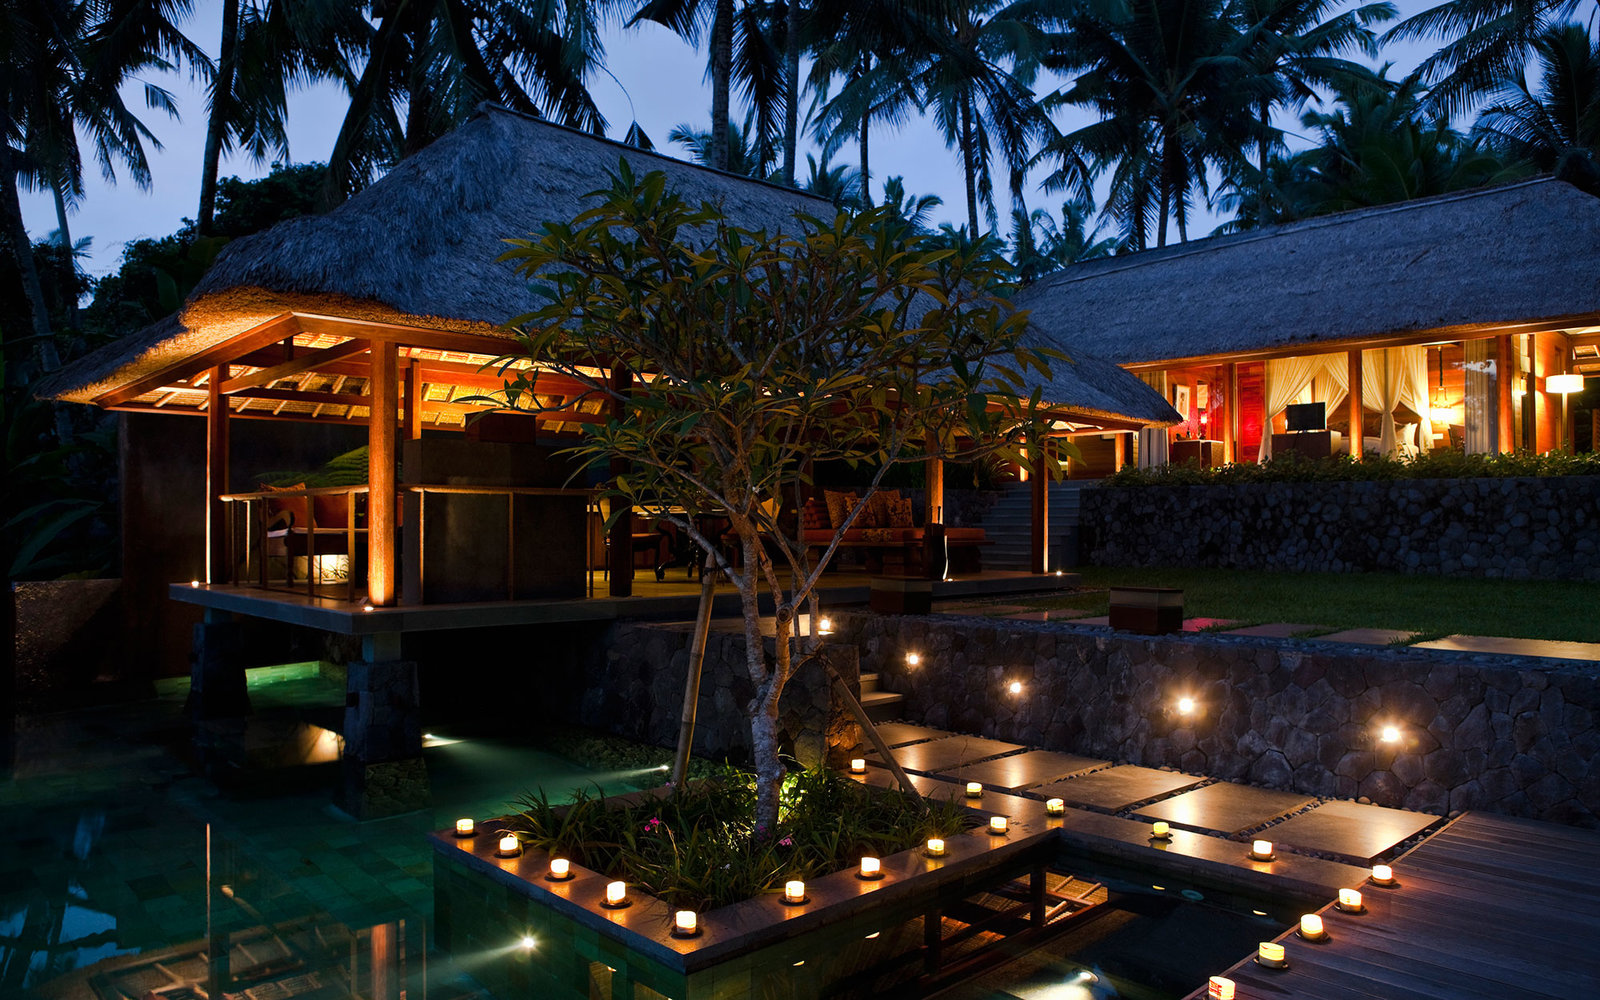 Night Images of Resort Hotels